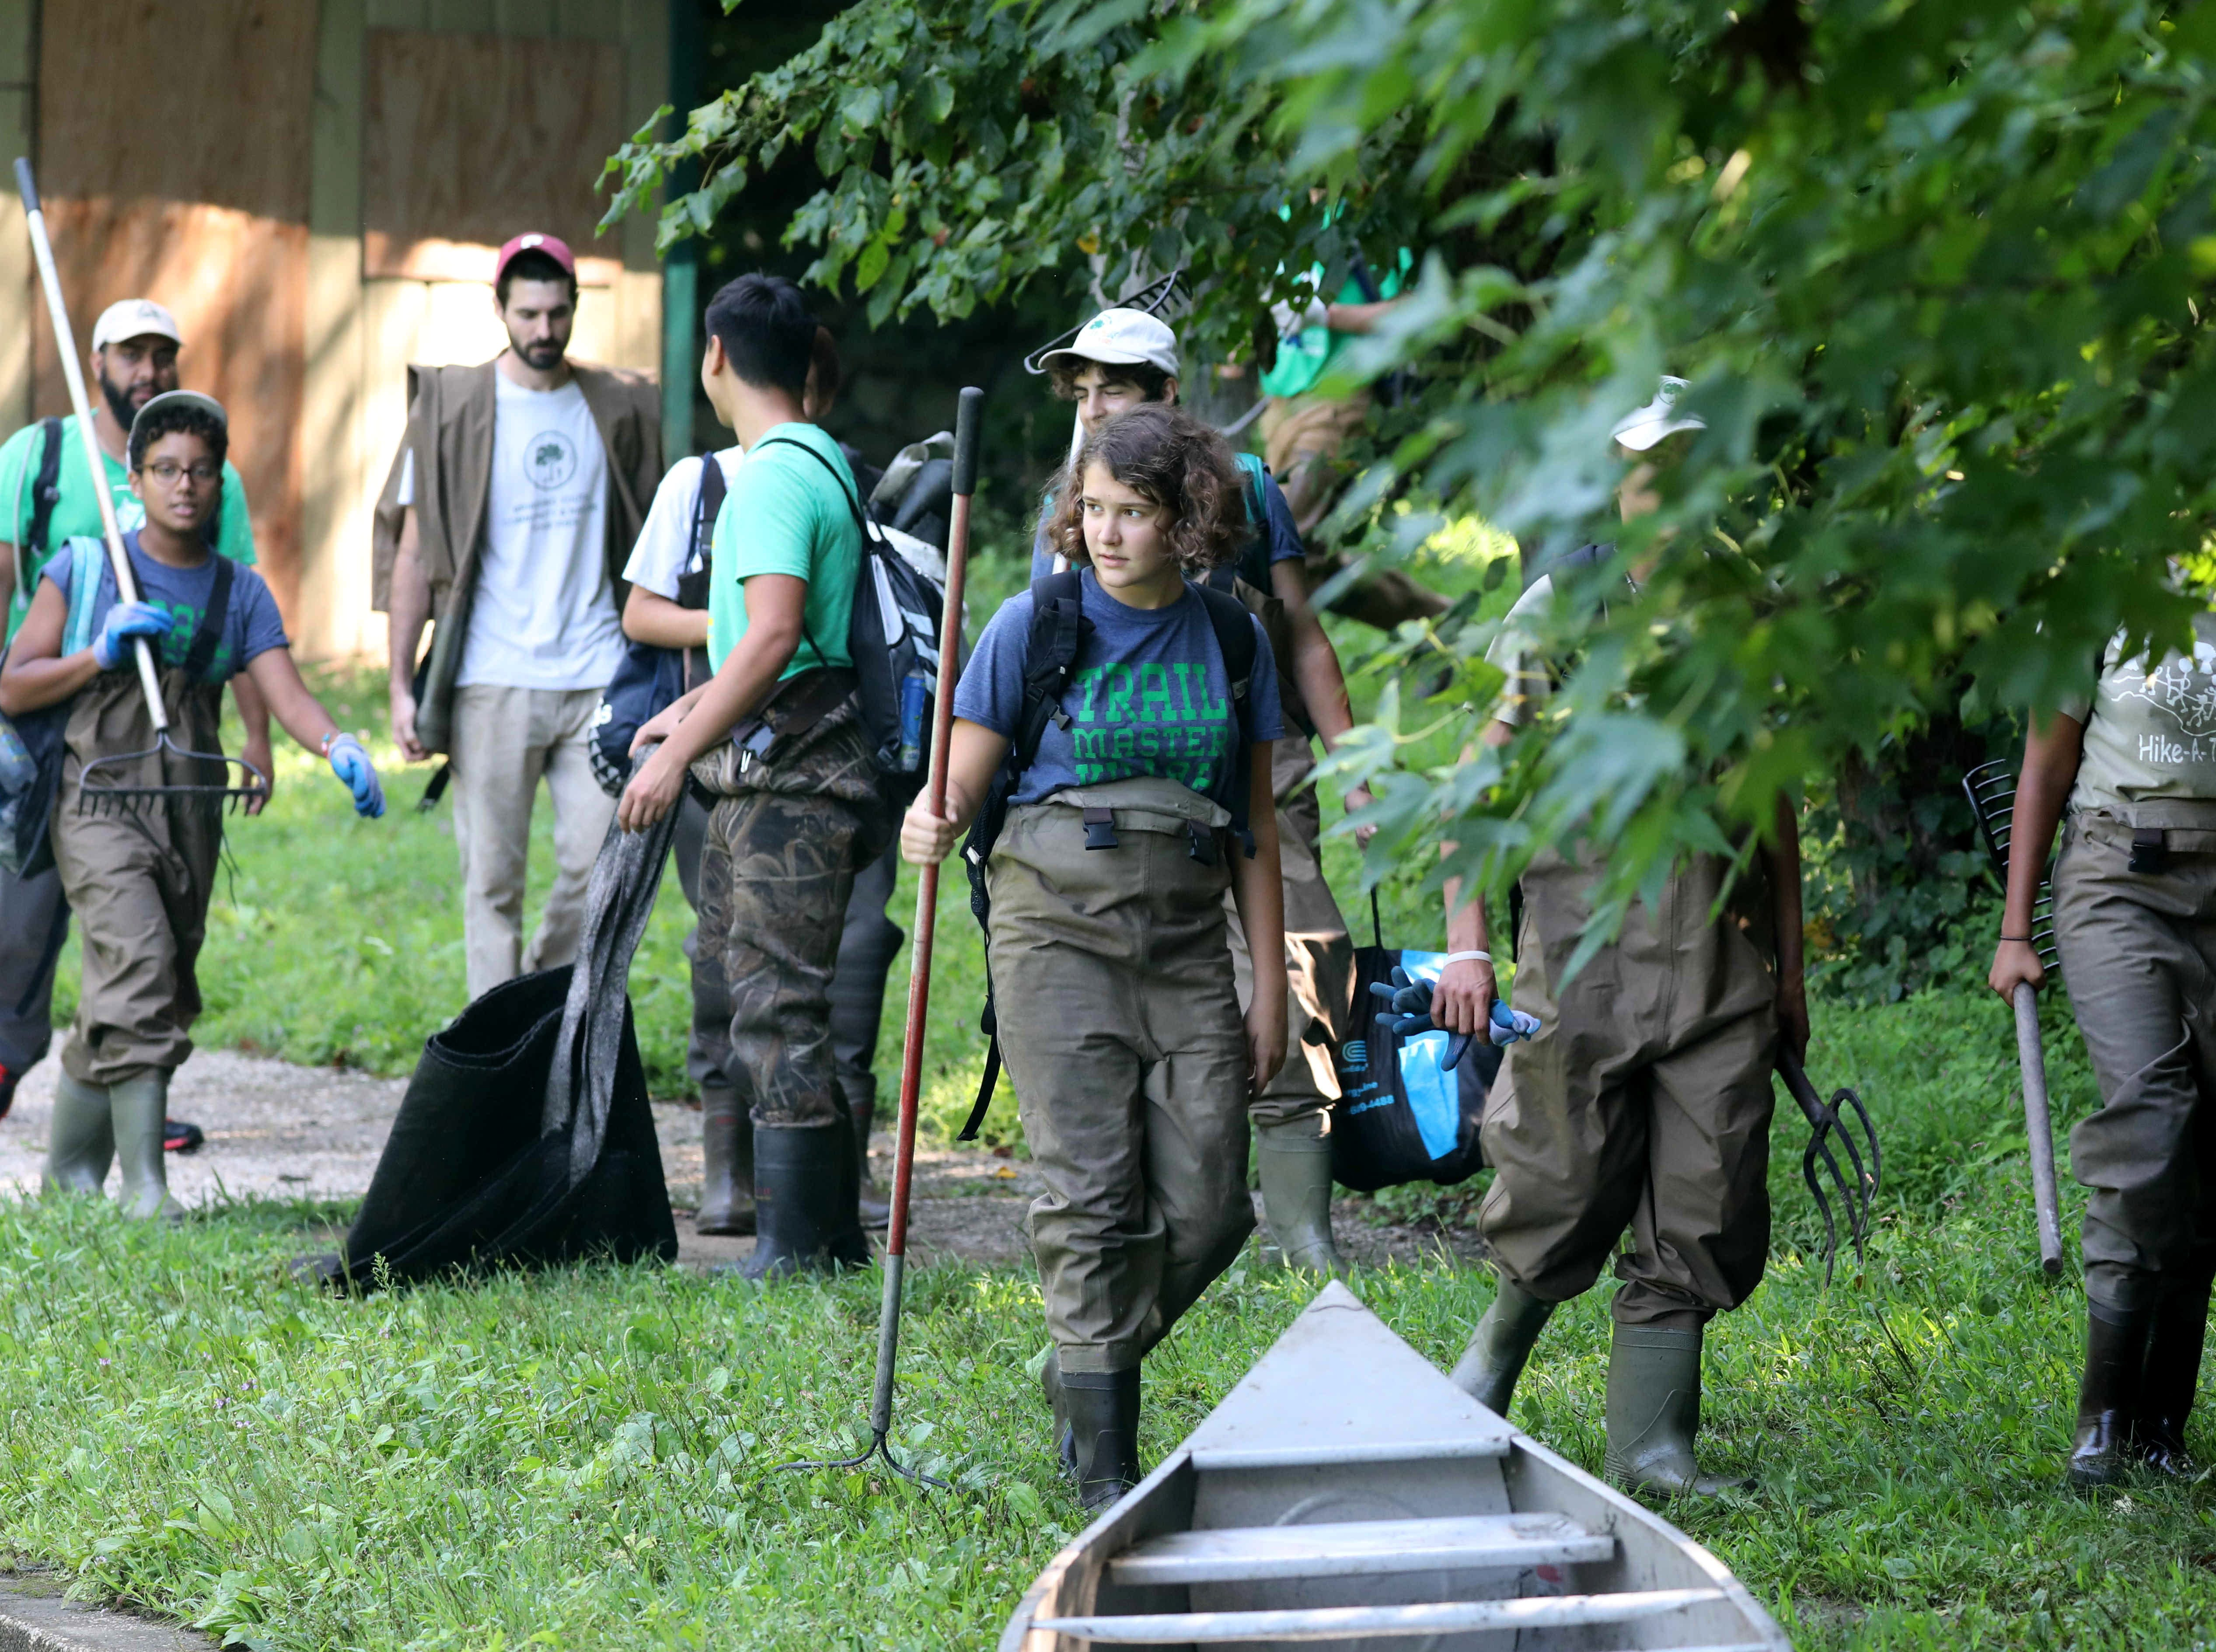 Volunteers with Friends of Van Cortlandt Park and Groundwork Hudson Valley arrive to assist The Westchester Parks Foundation collect some invasive water chestnut plants from the lake at Tibbetts Brook Park in Yonkers, Aug. 8, 2018.